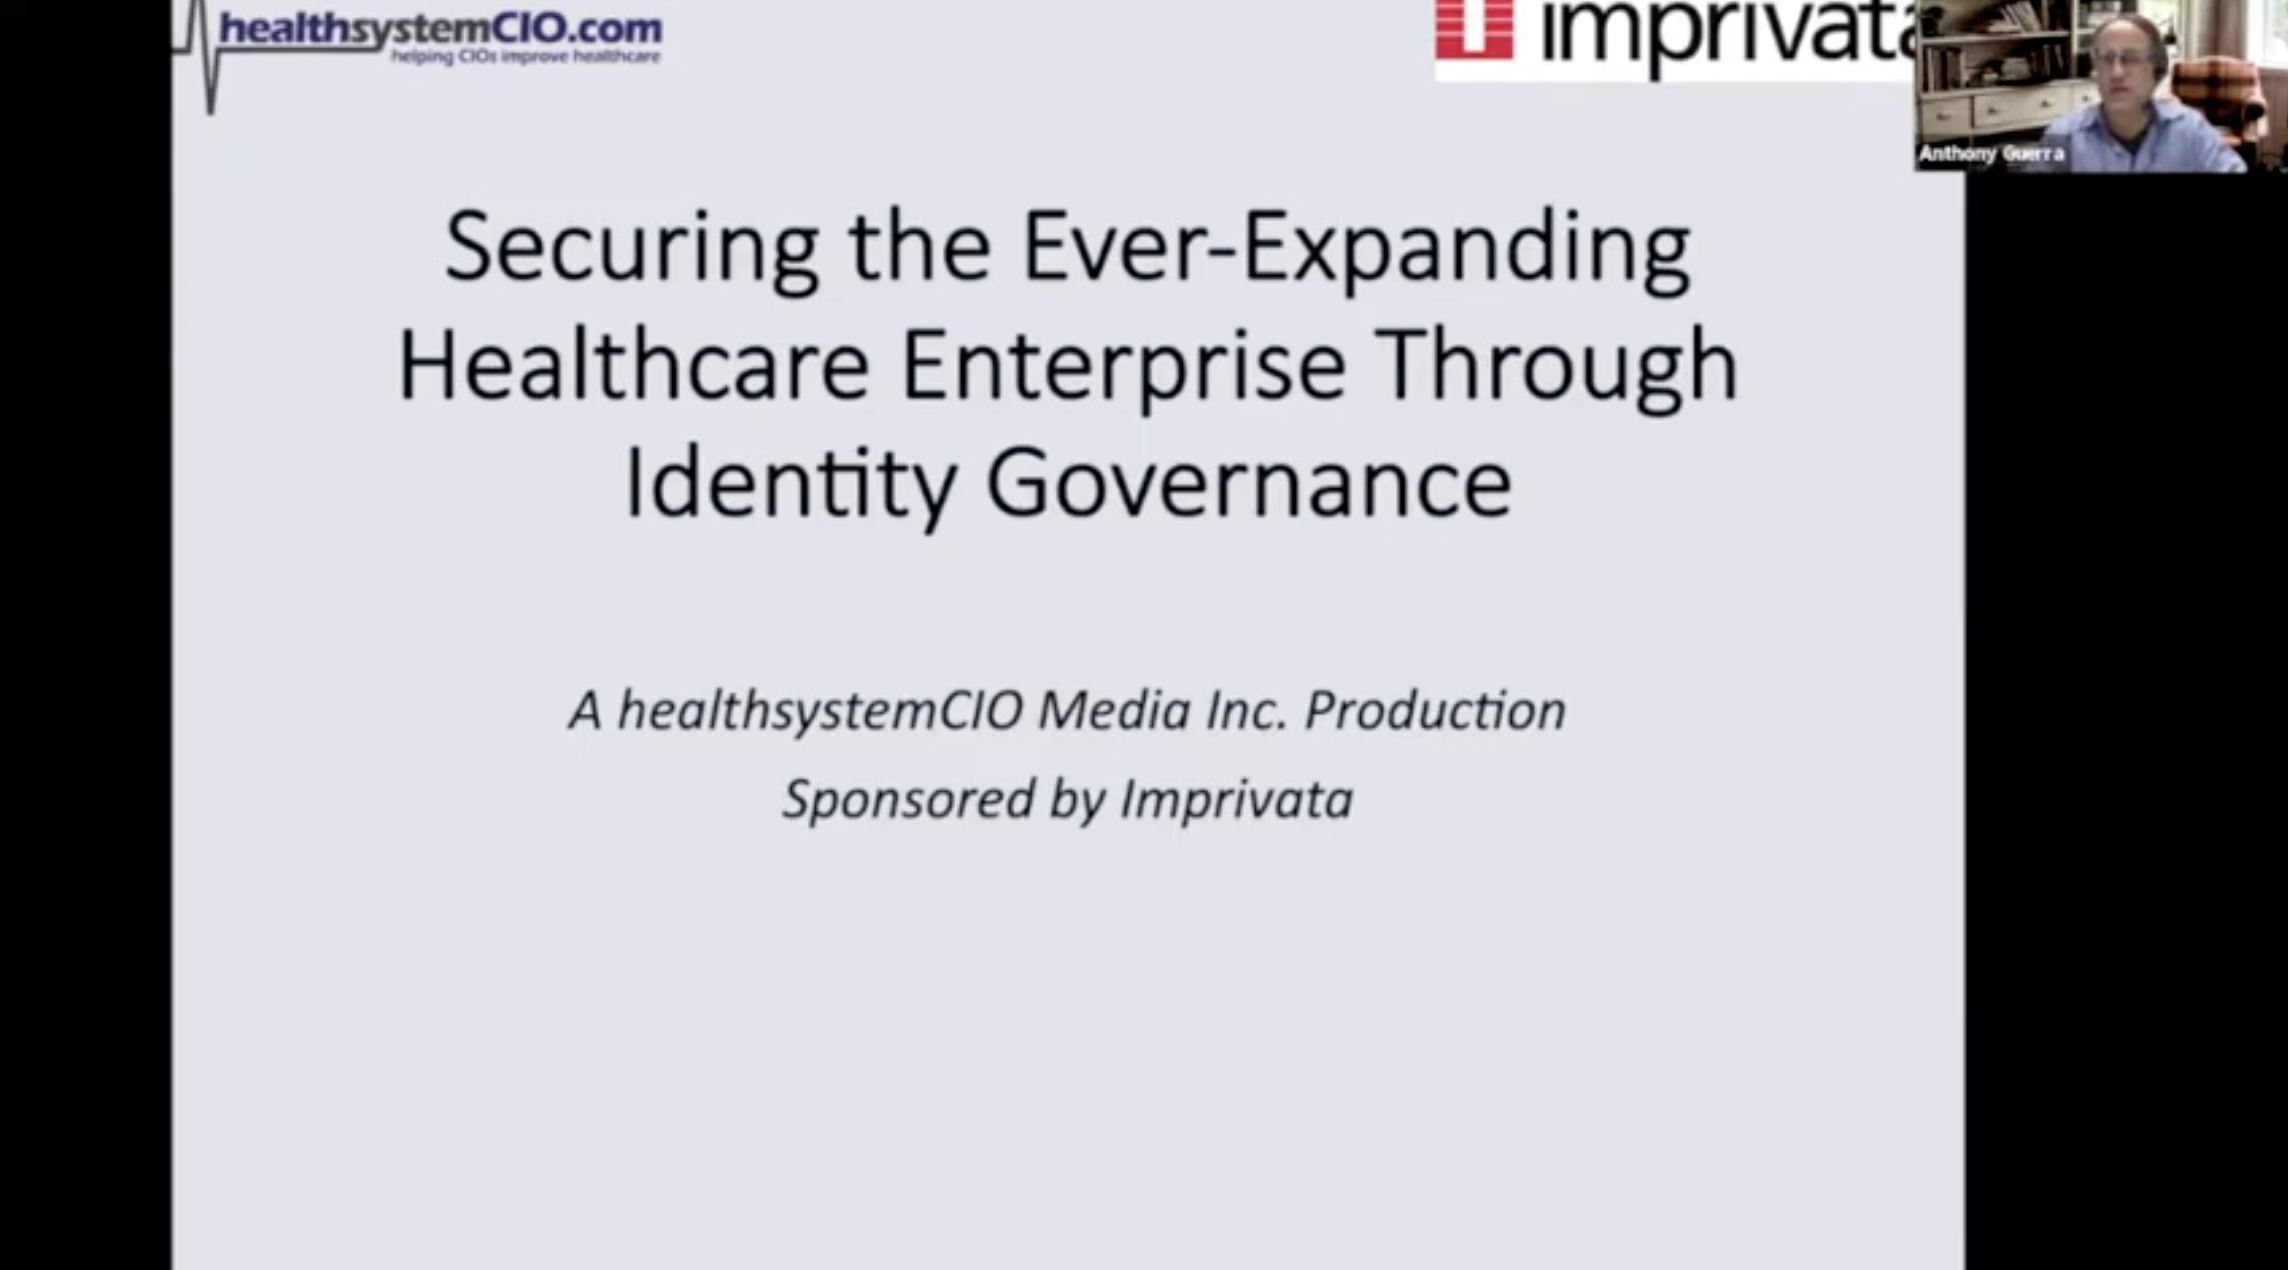 Securing the Ever-Expanding Healthcare Enterprise Through Identity Governance